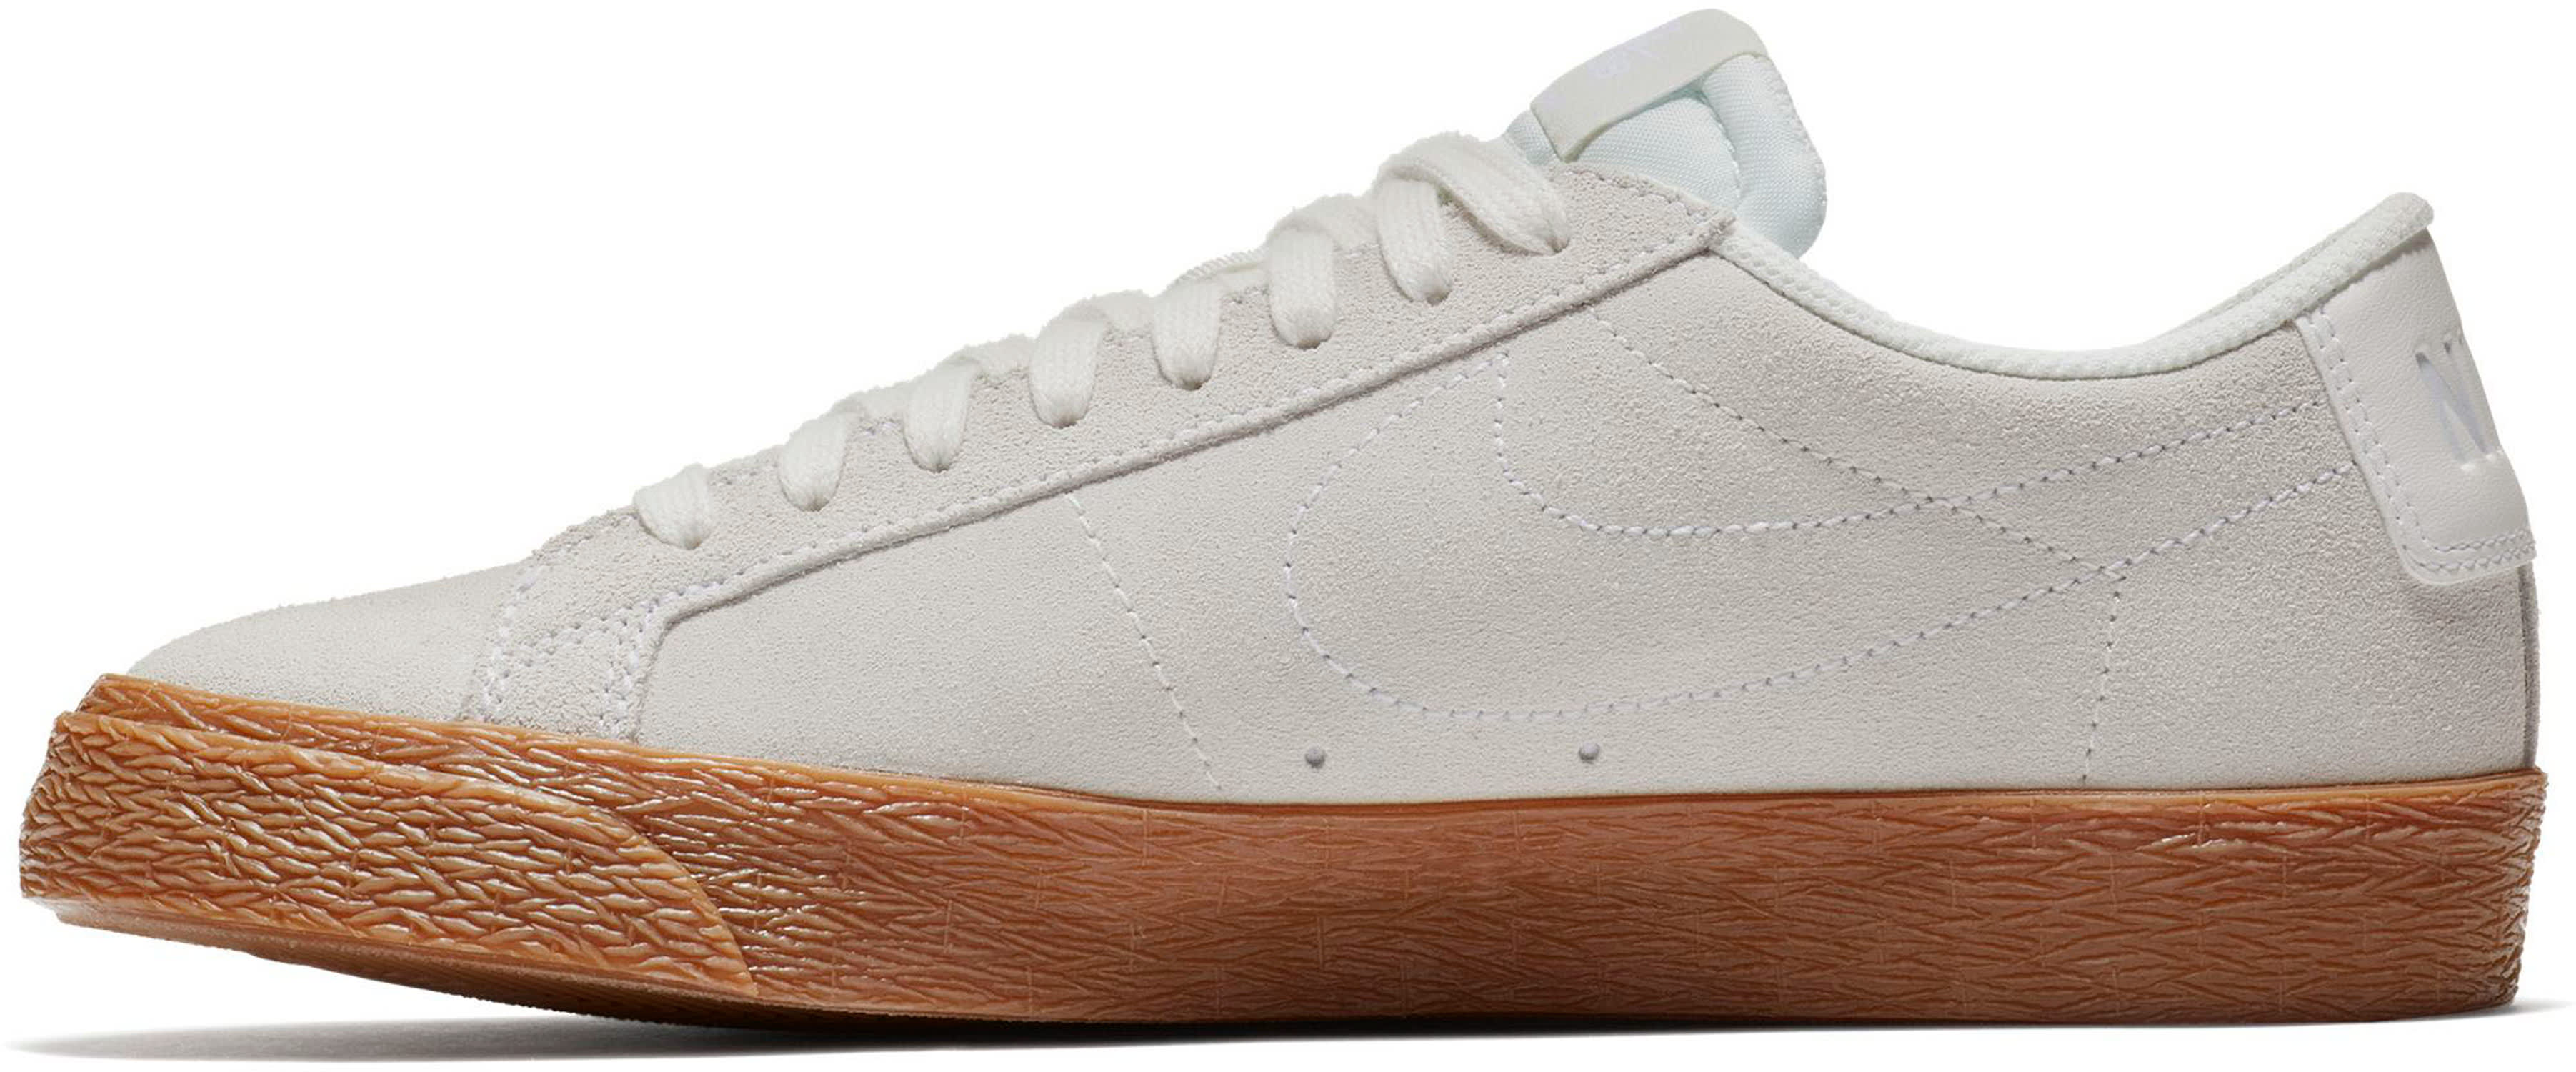 Nike SB Blazer Zoom Low Skate Shoes - thumbnail 2